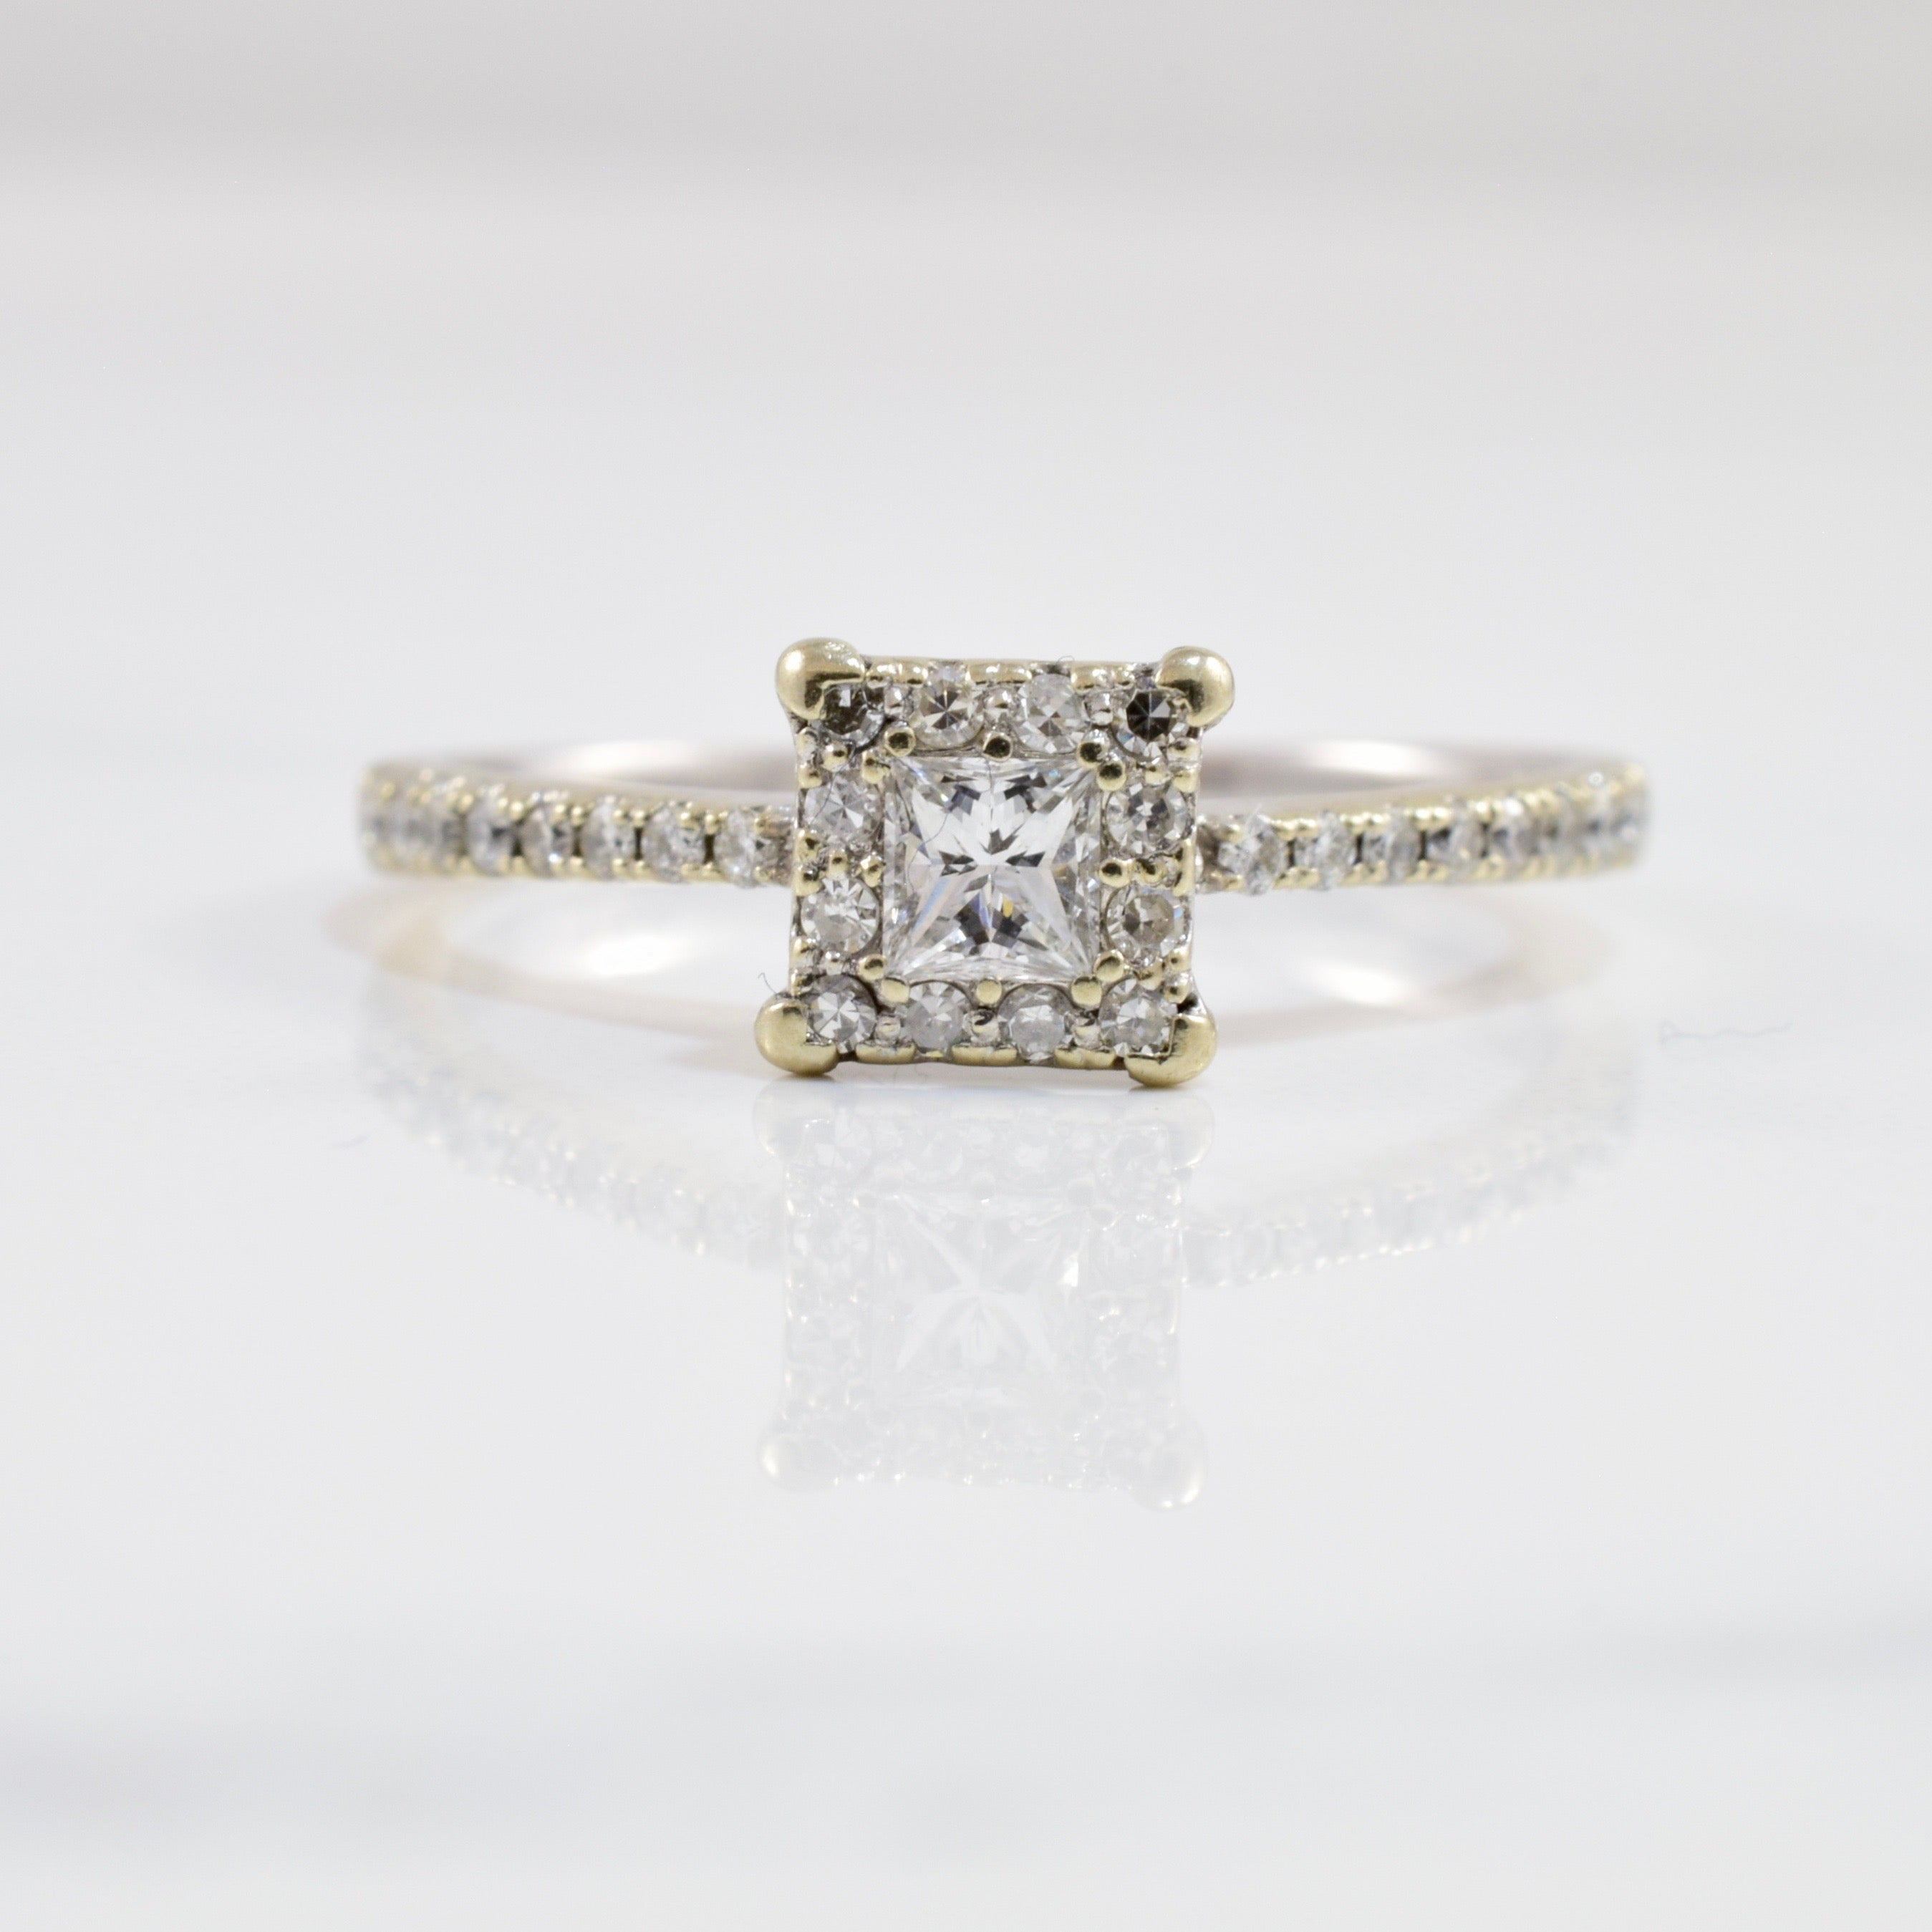 Petite Princess Diamond Halo Ring | 0.27 ctw SZ 7.25 |